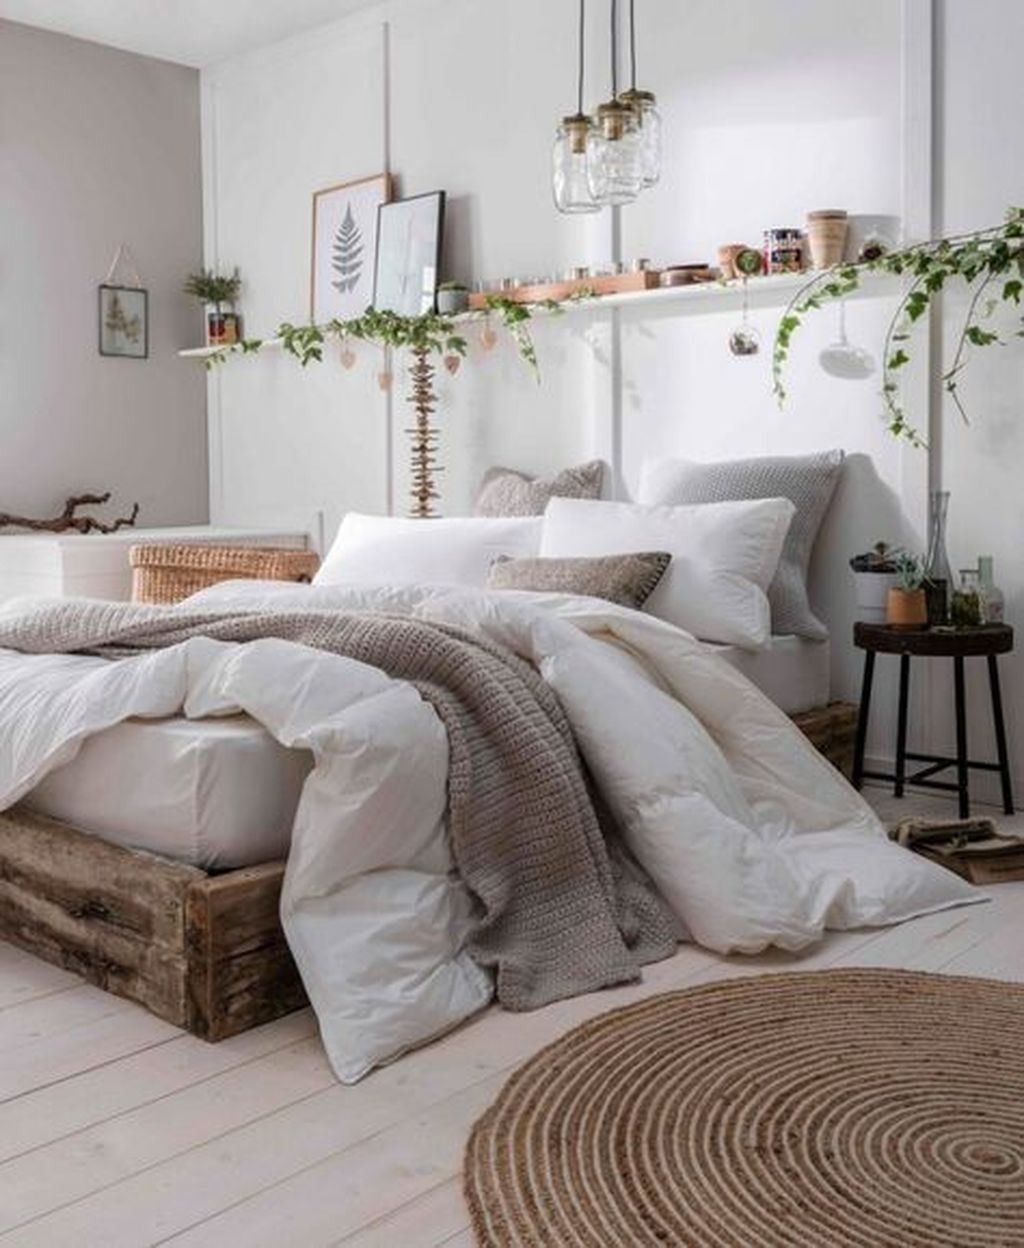 Lovely Simple Bedroom Decor Ideas That You Should Try 29